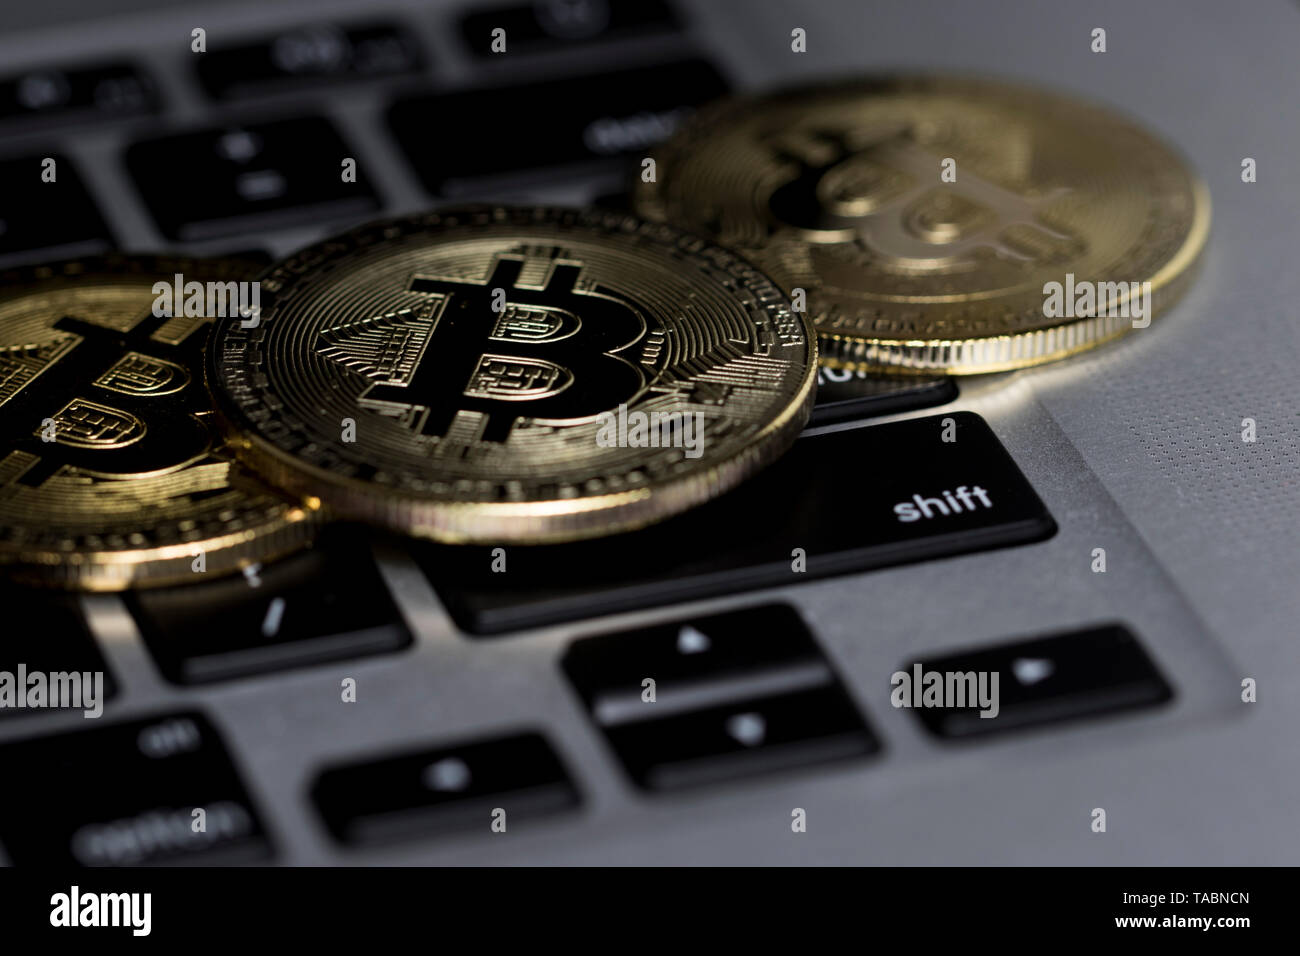 Bitcoin close up on computer keyboard. Investing in financial sector. Stock Photo